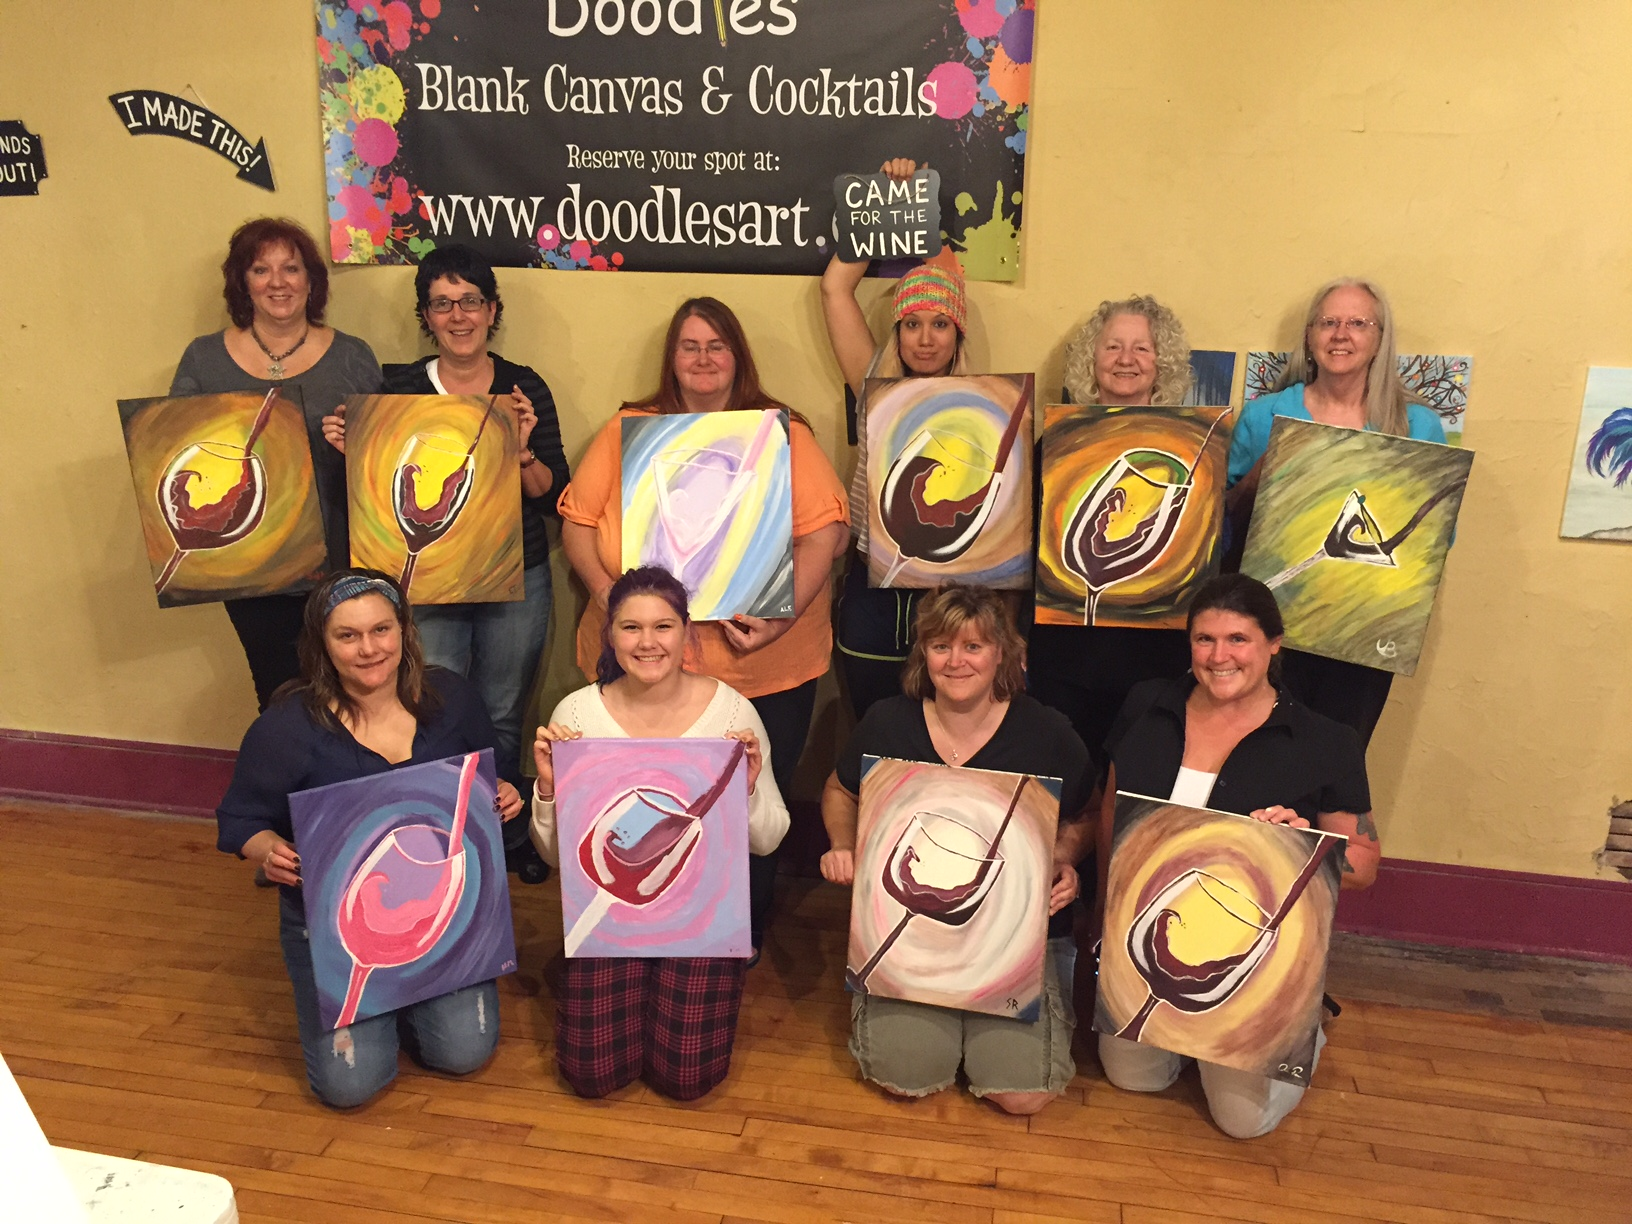 """Uncorking their inner artists!"" by painting Wine Glasses, Champagne Flutes and Martinis! 10/9/15"